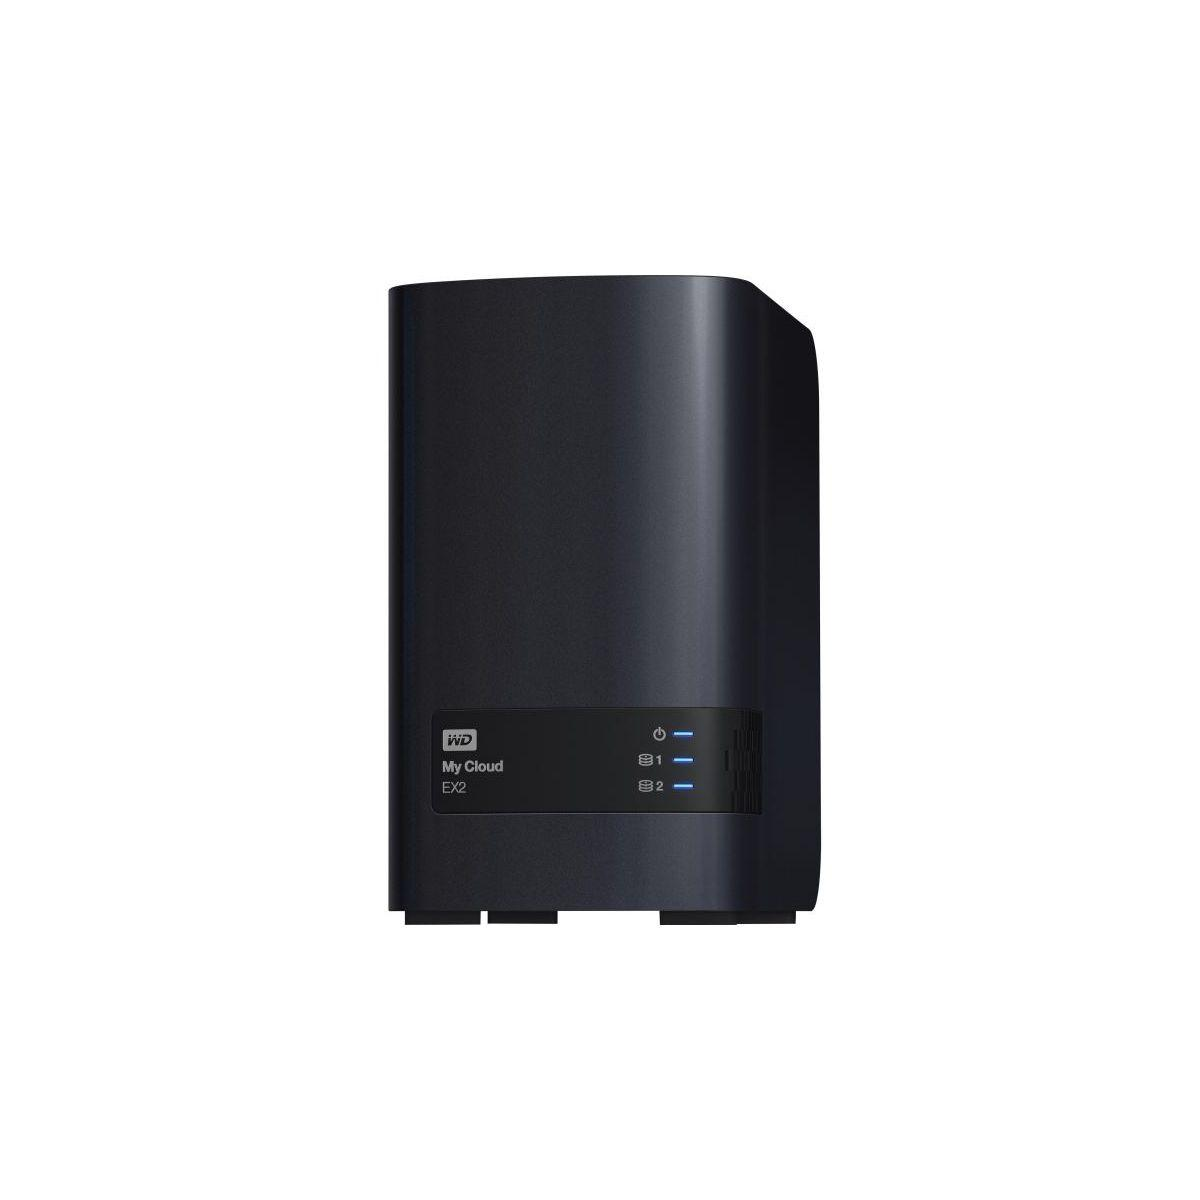 Serveur nas western digital 8to my cloud ex2 ultra - 2% de rem...